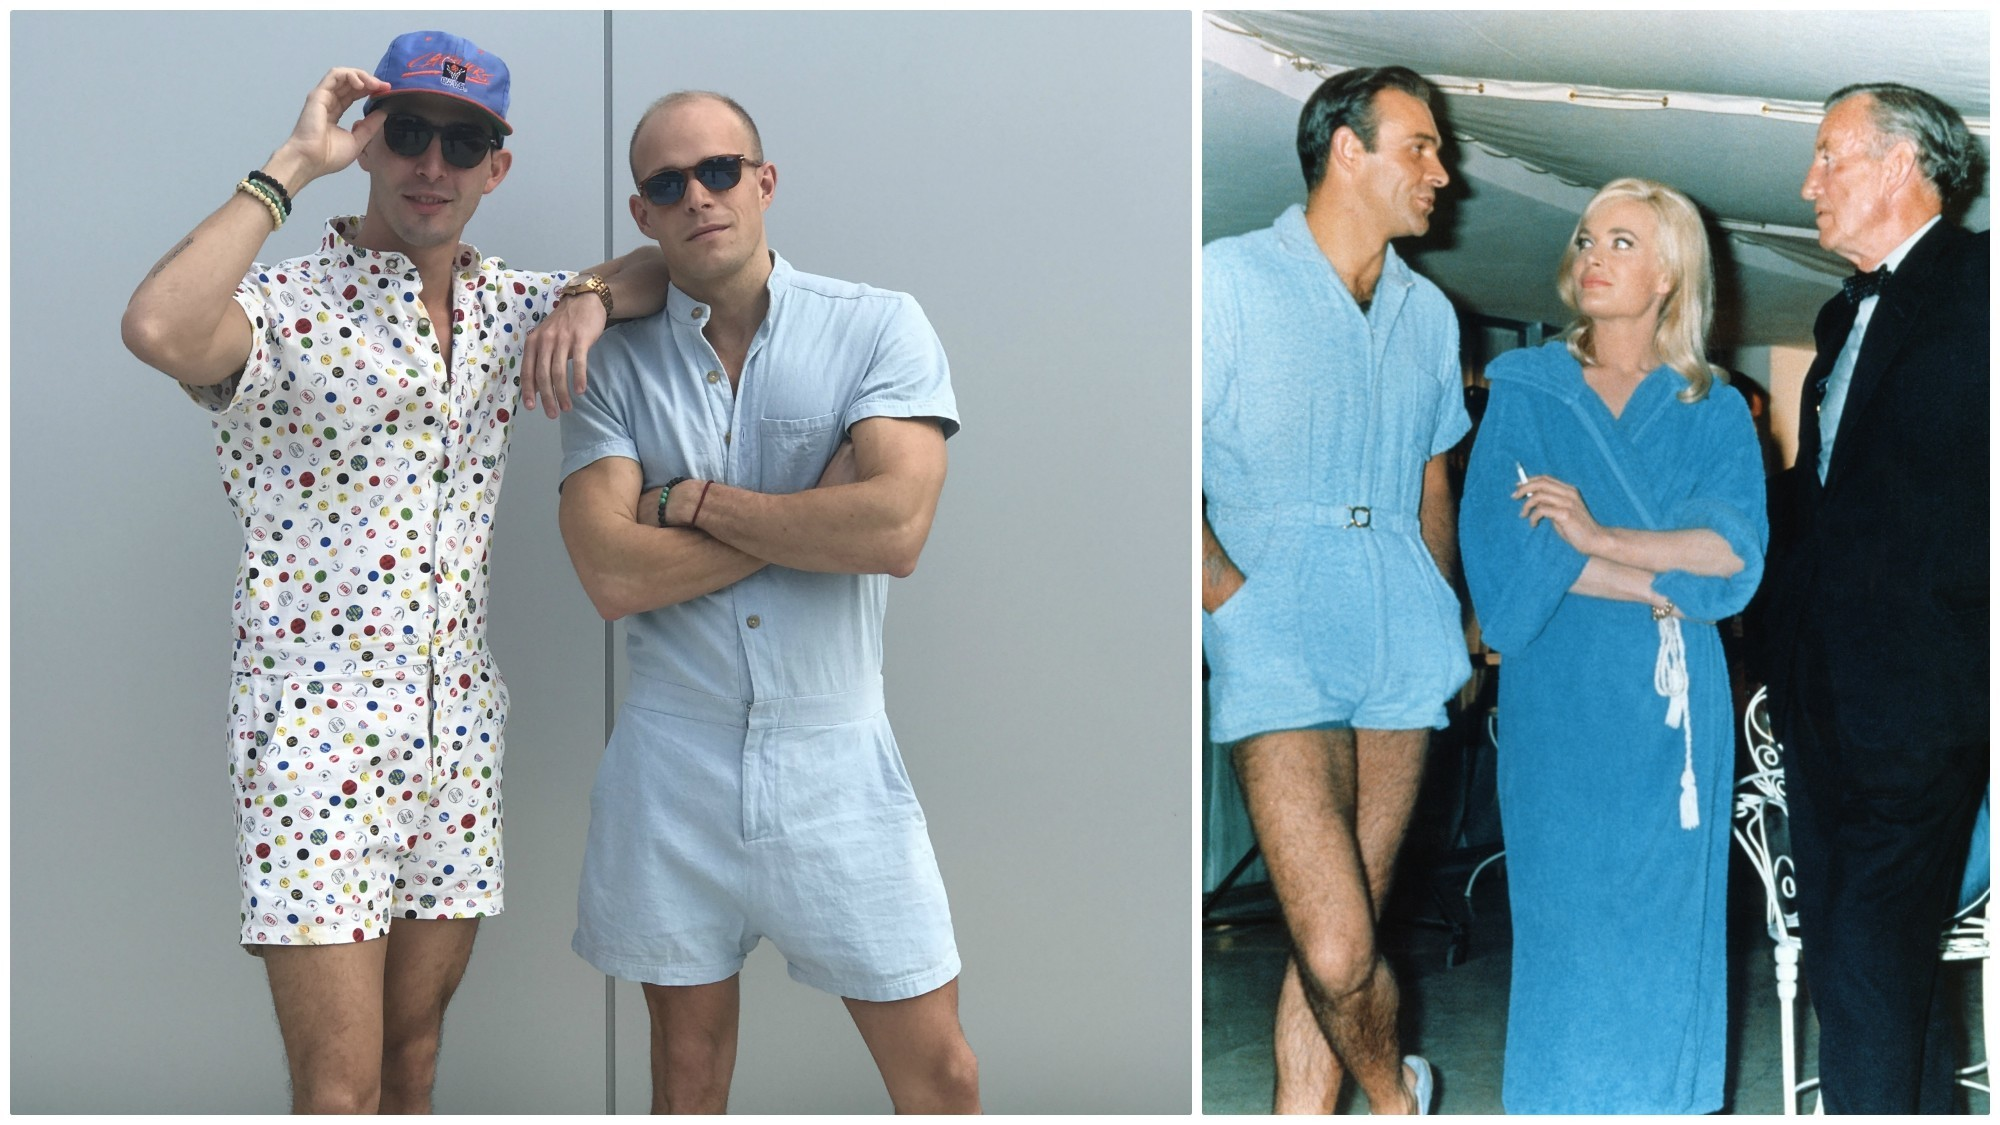 Aced Design's version of the male romper, left, and a blue terrycloth version worn by Sean Connery as James Bond in